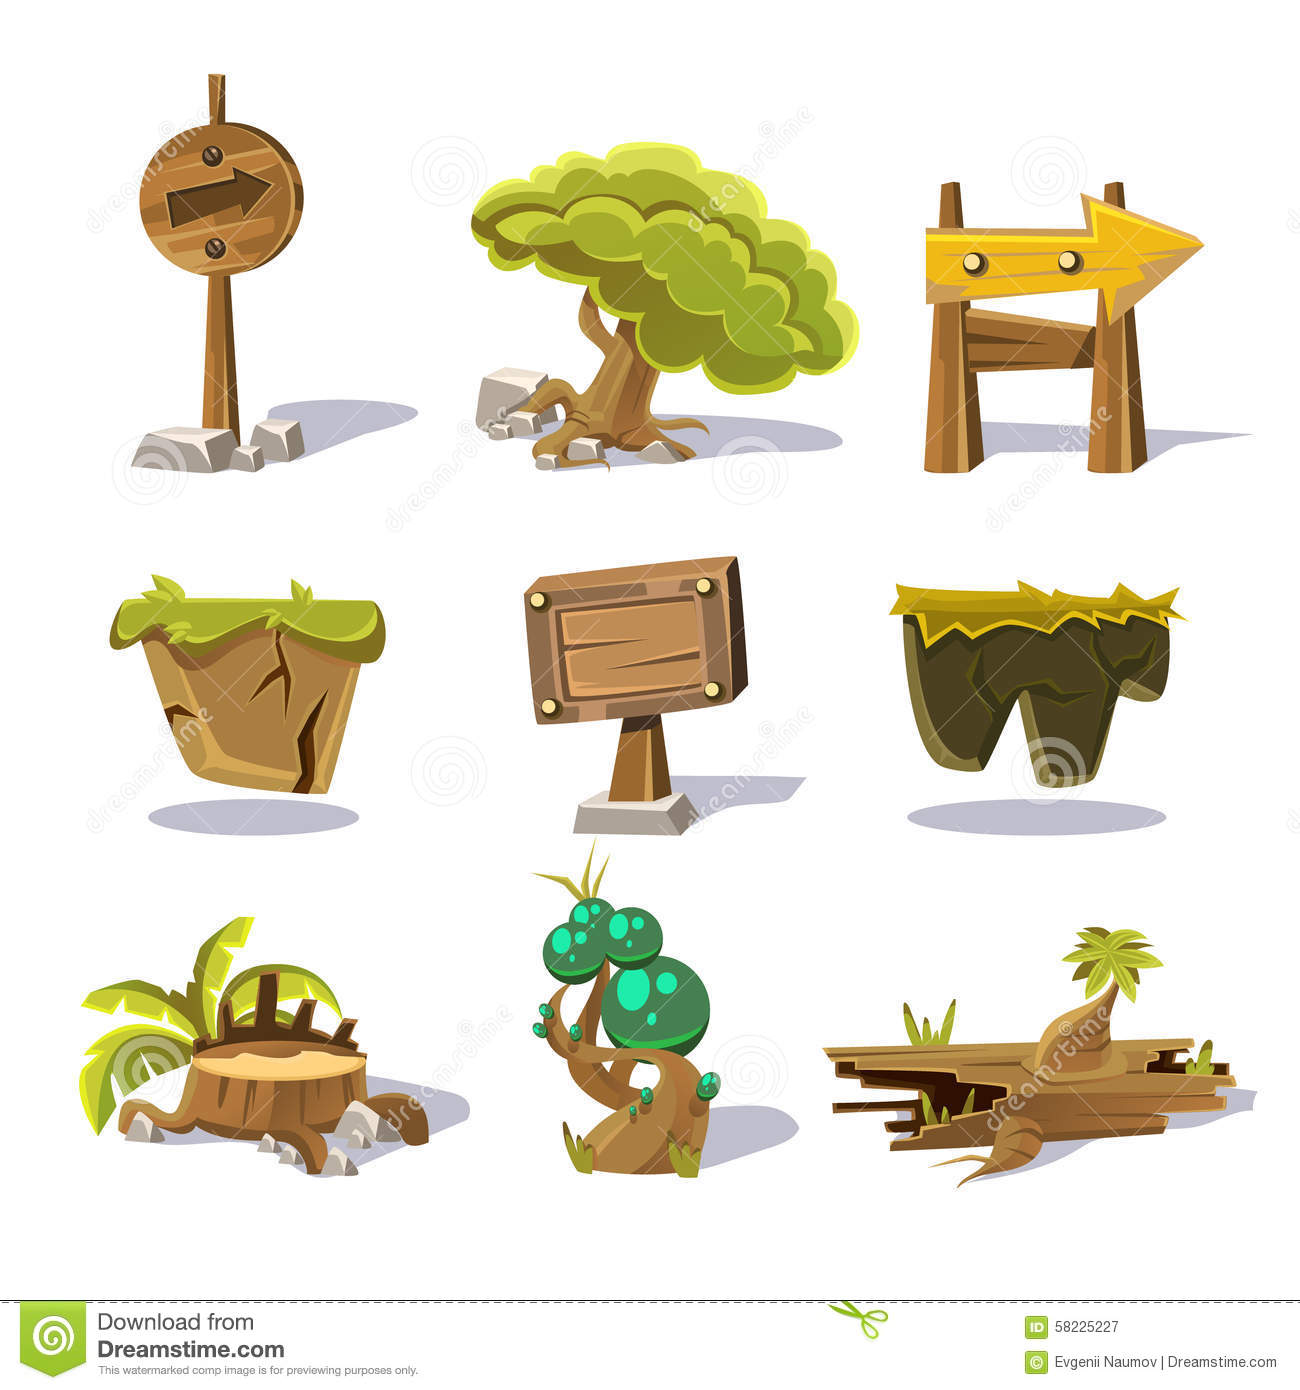 objects nature cartoon elements background vector gaming preview shutterstock